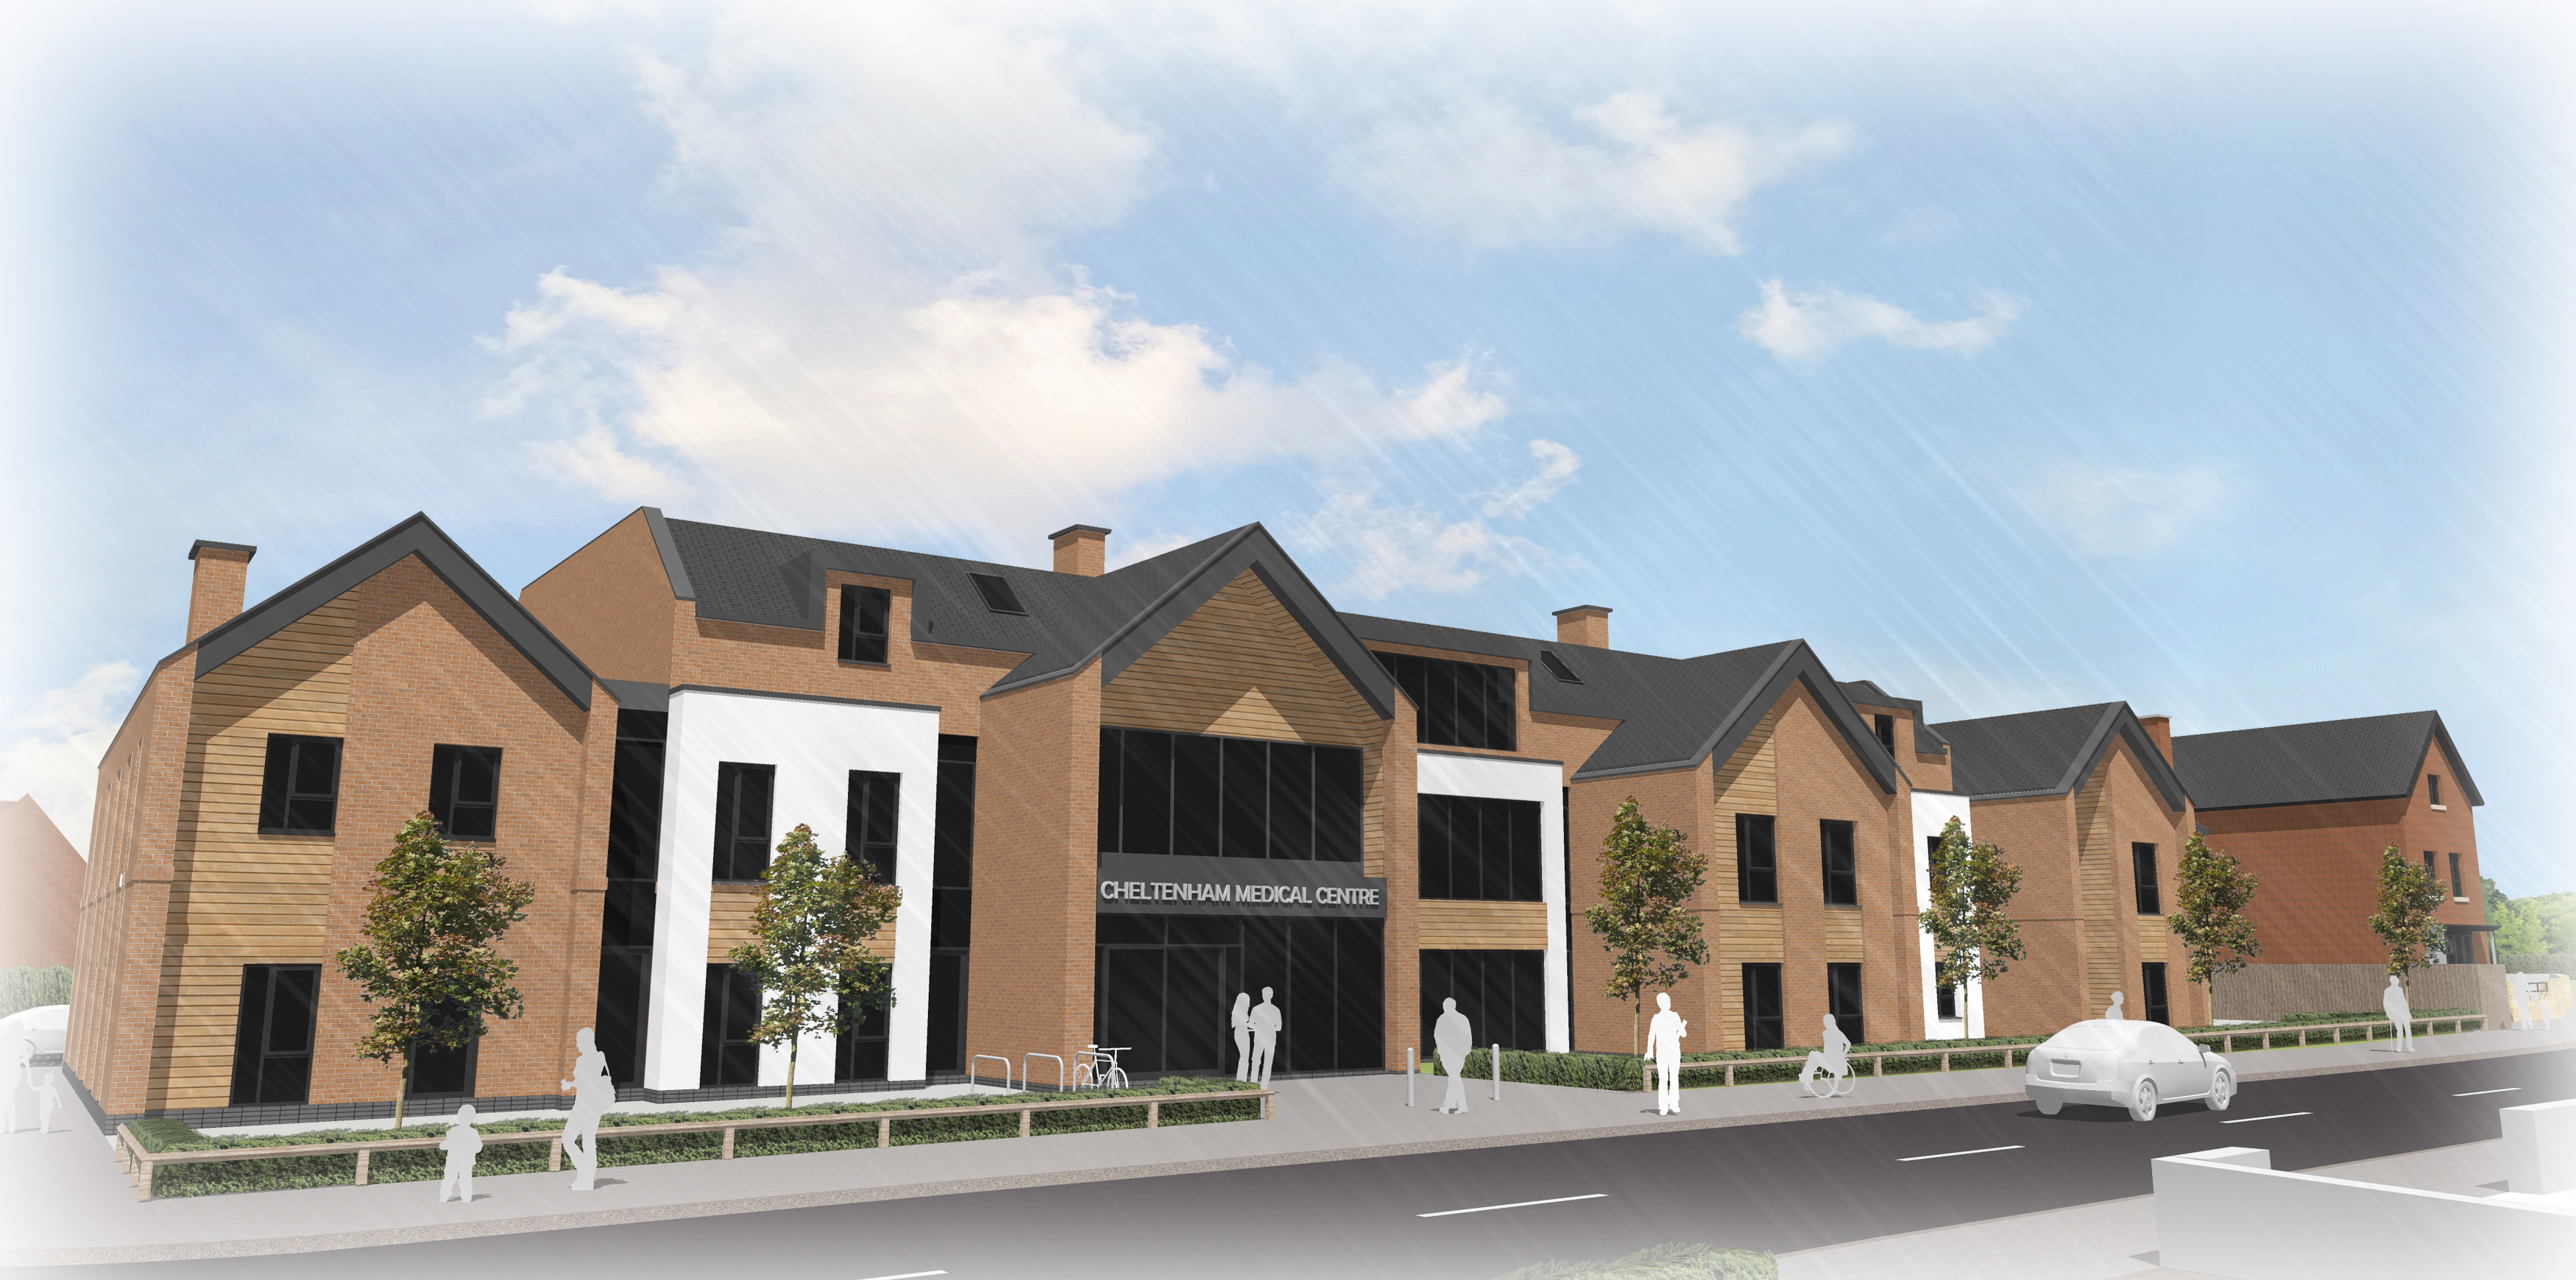 West Gorton Medical Centre Architectural sketch perspective visual